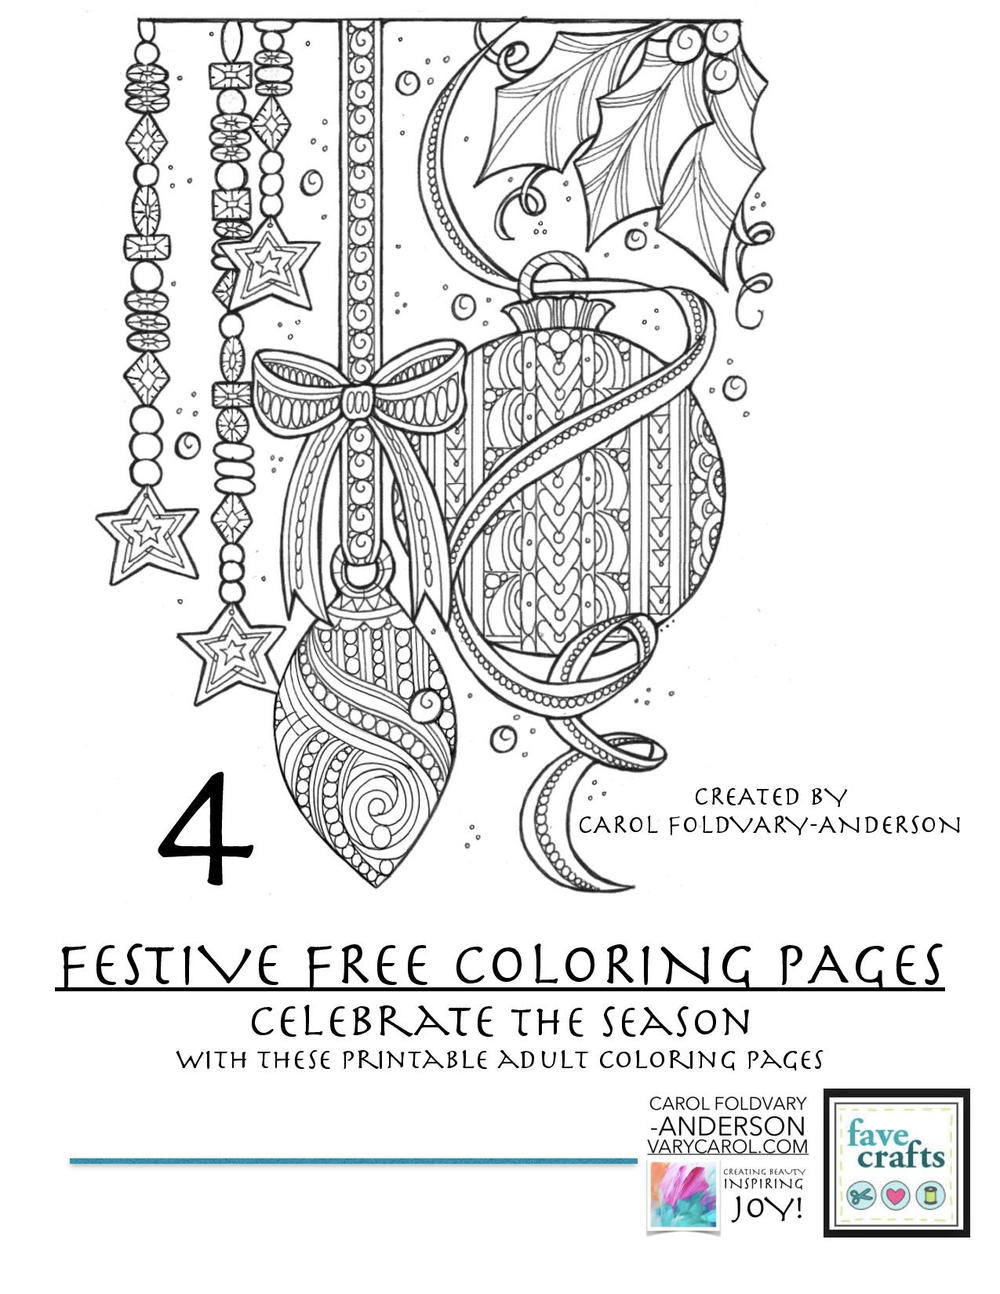 4 festive free holiday coloring pages for adults pdf. Black Bedroom Furniture Sets. Home Design Ideas